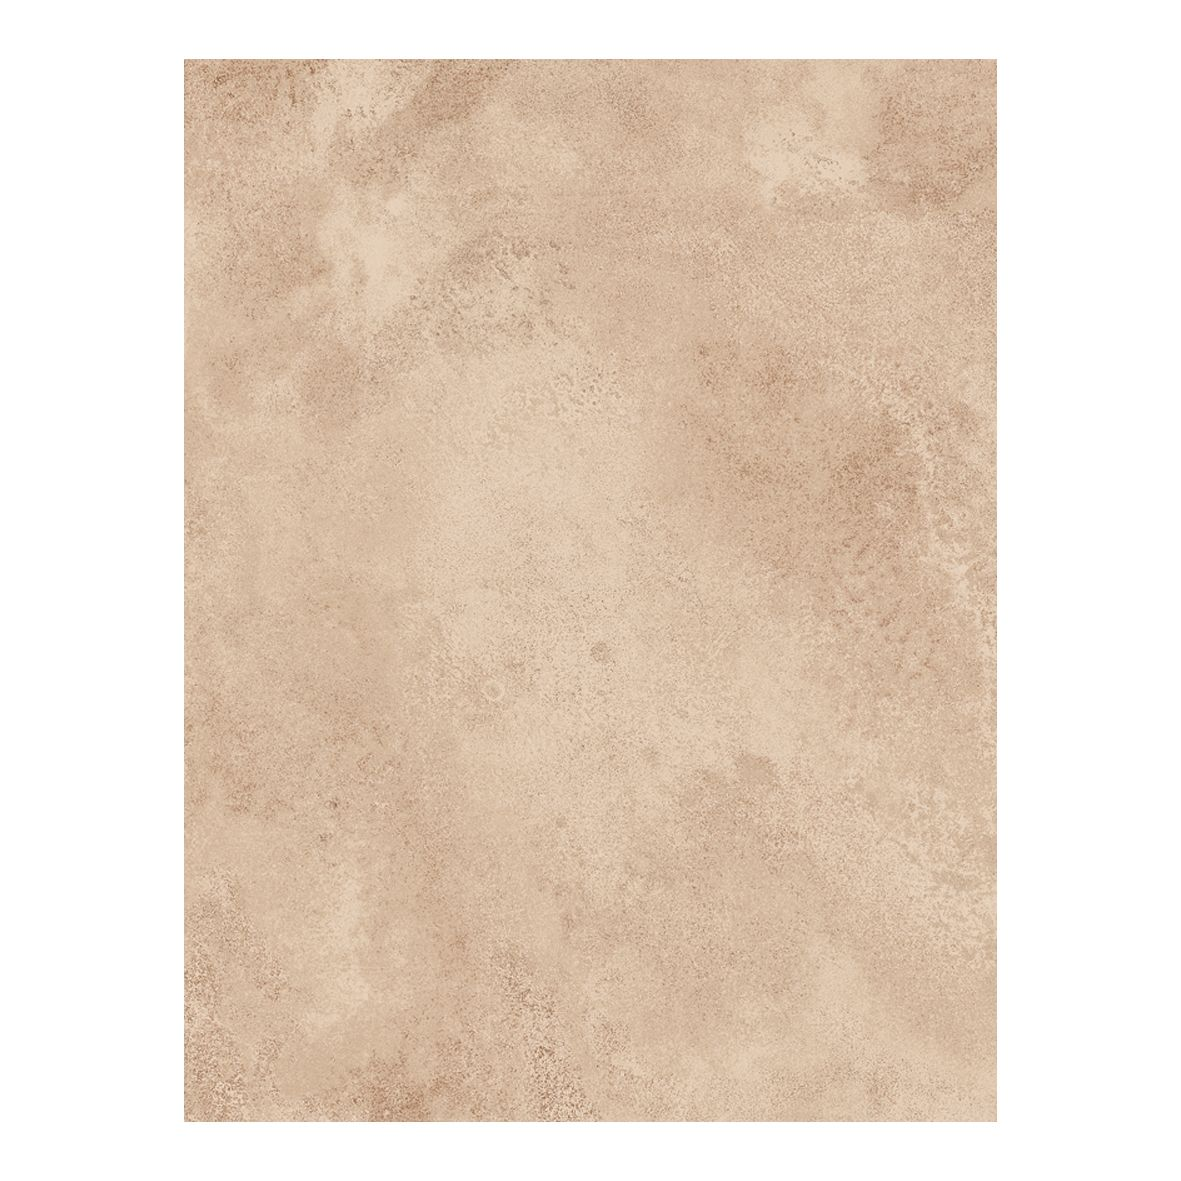 Natural beauty sand tile bathroom wall tiles 360x275 johnson tiles natural beauty range sand cream beige sand ivory glazed ceramic suitable for walls used in bathrooms from ceramic tile distributors dailygadgetfo Images